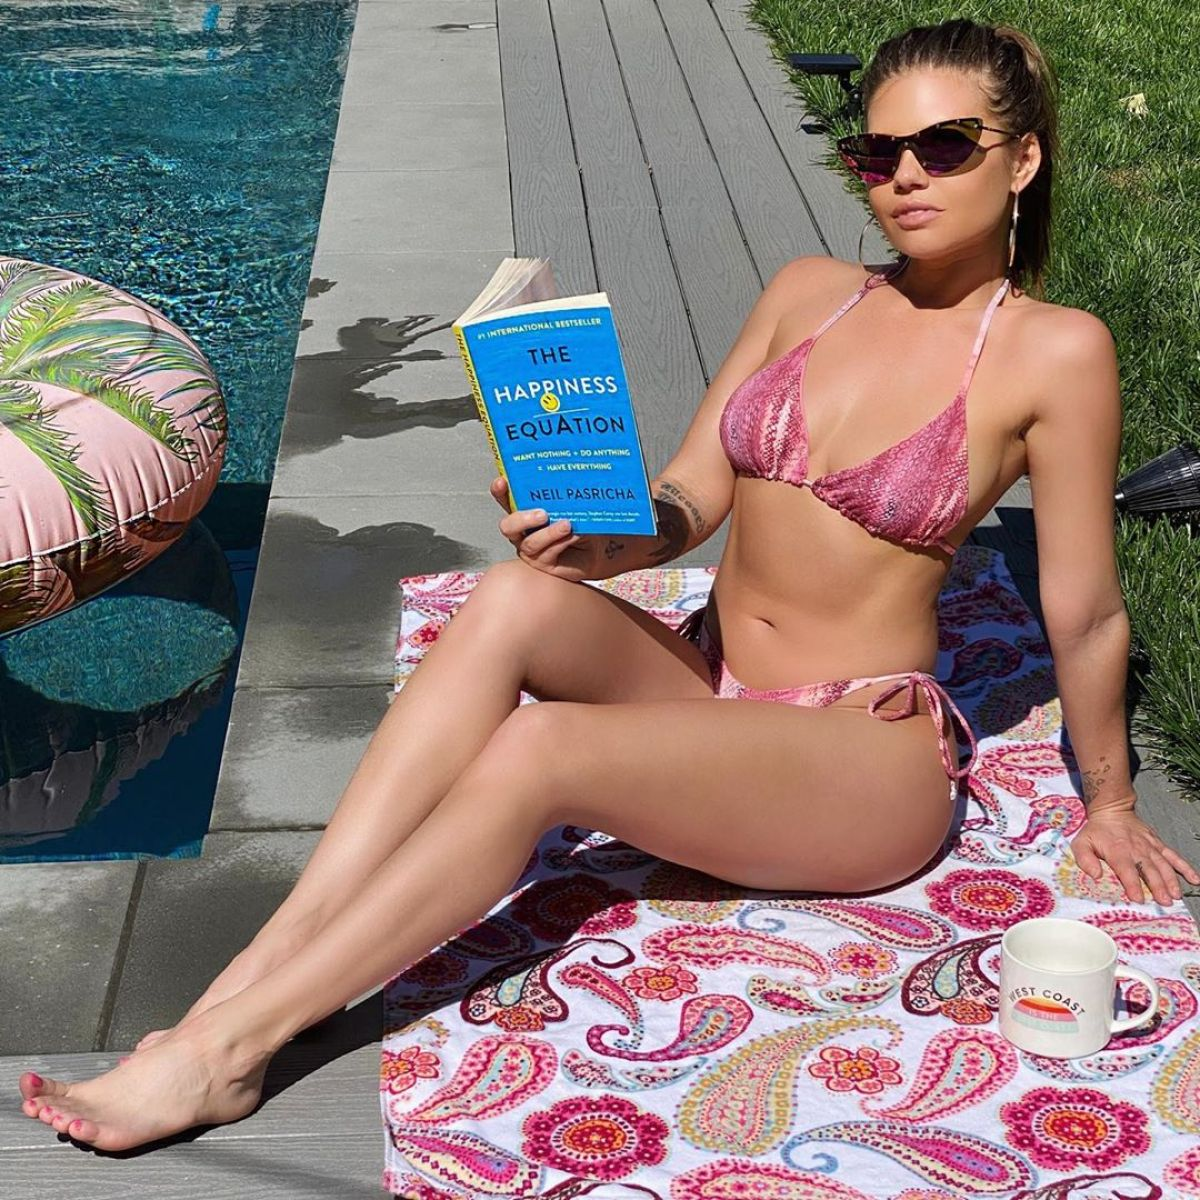 CHANEL WEST COAST in Bikini – Instagram Photo 04/16/2020 – HawtCelebs